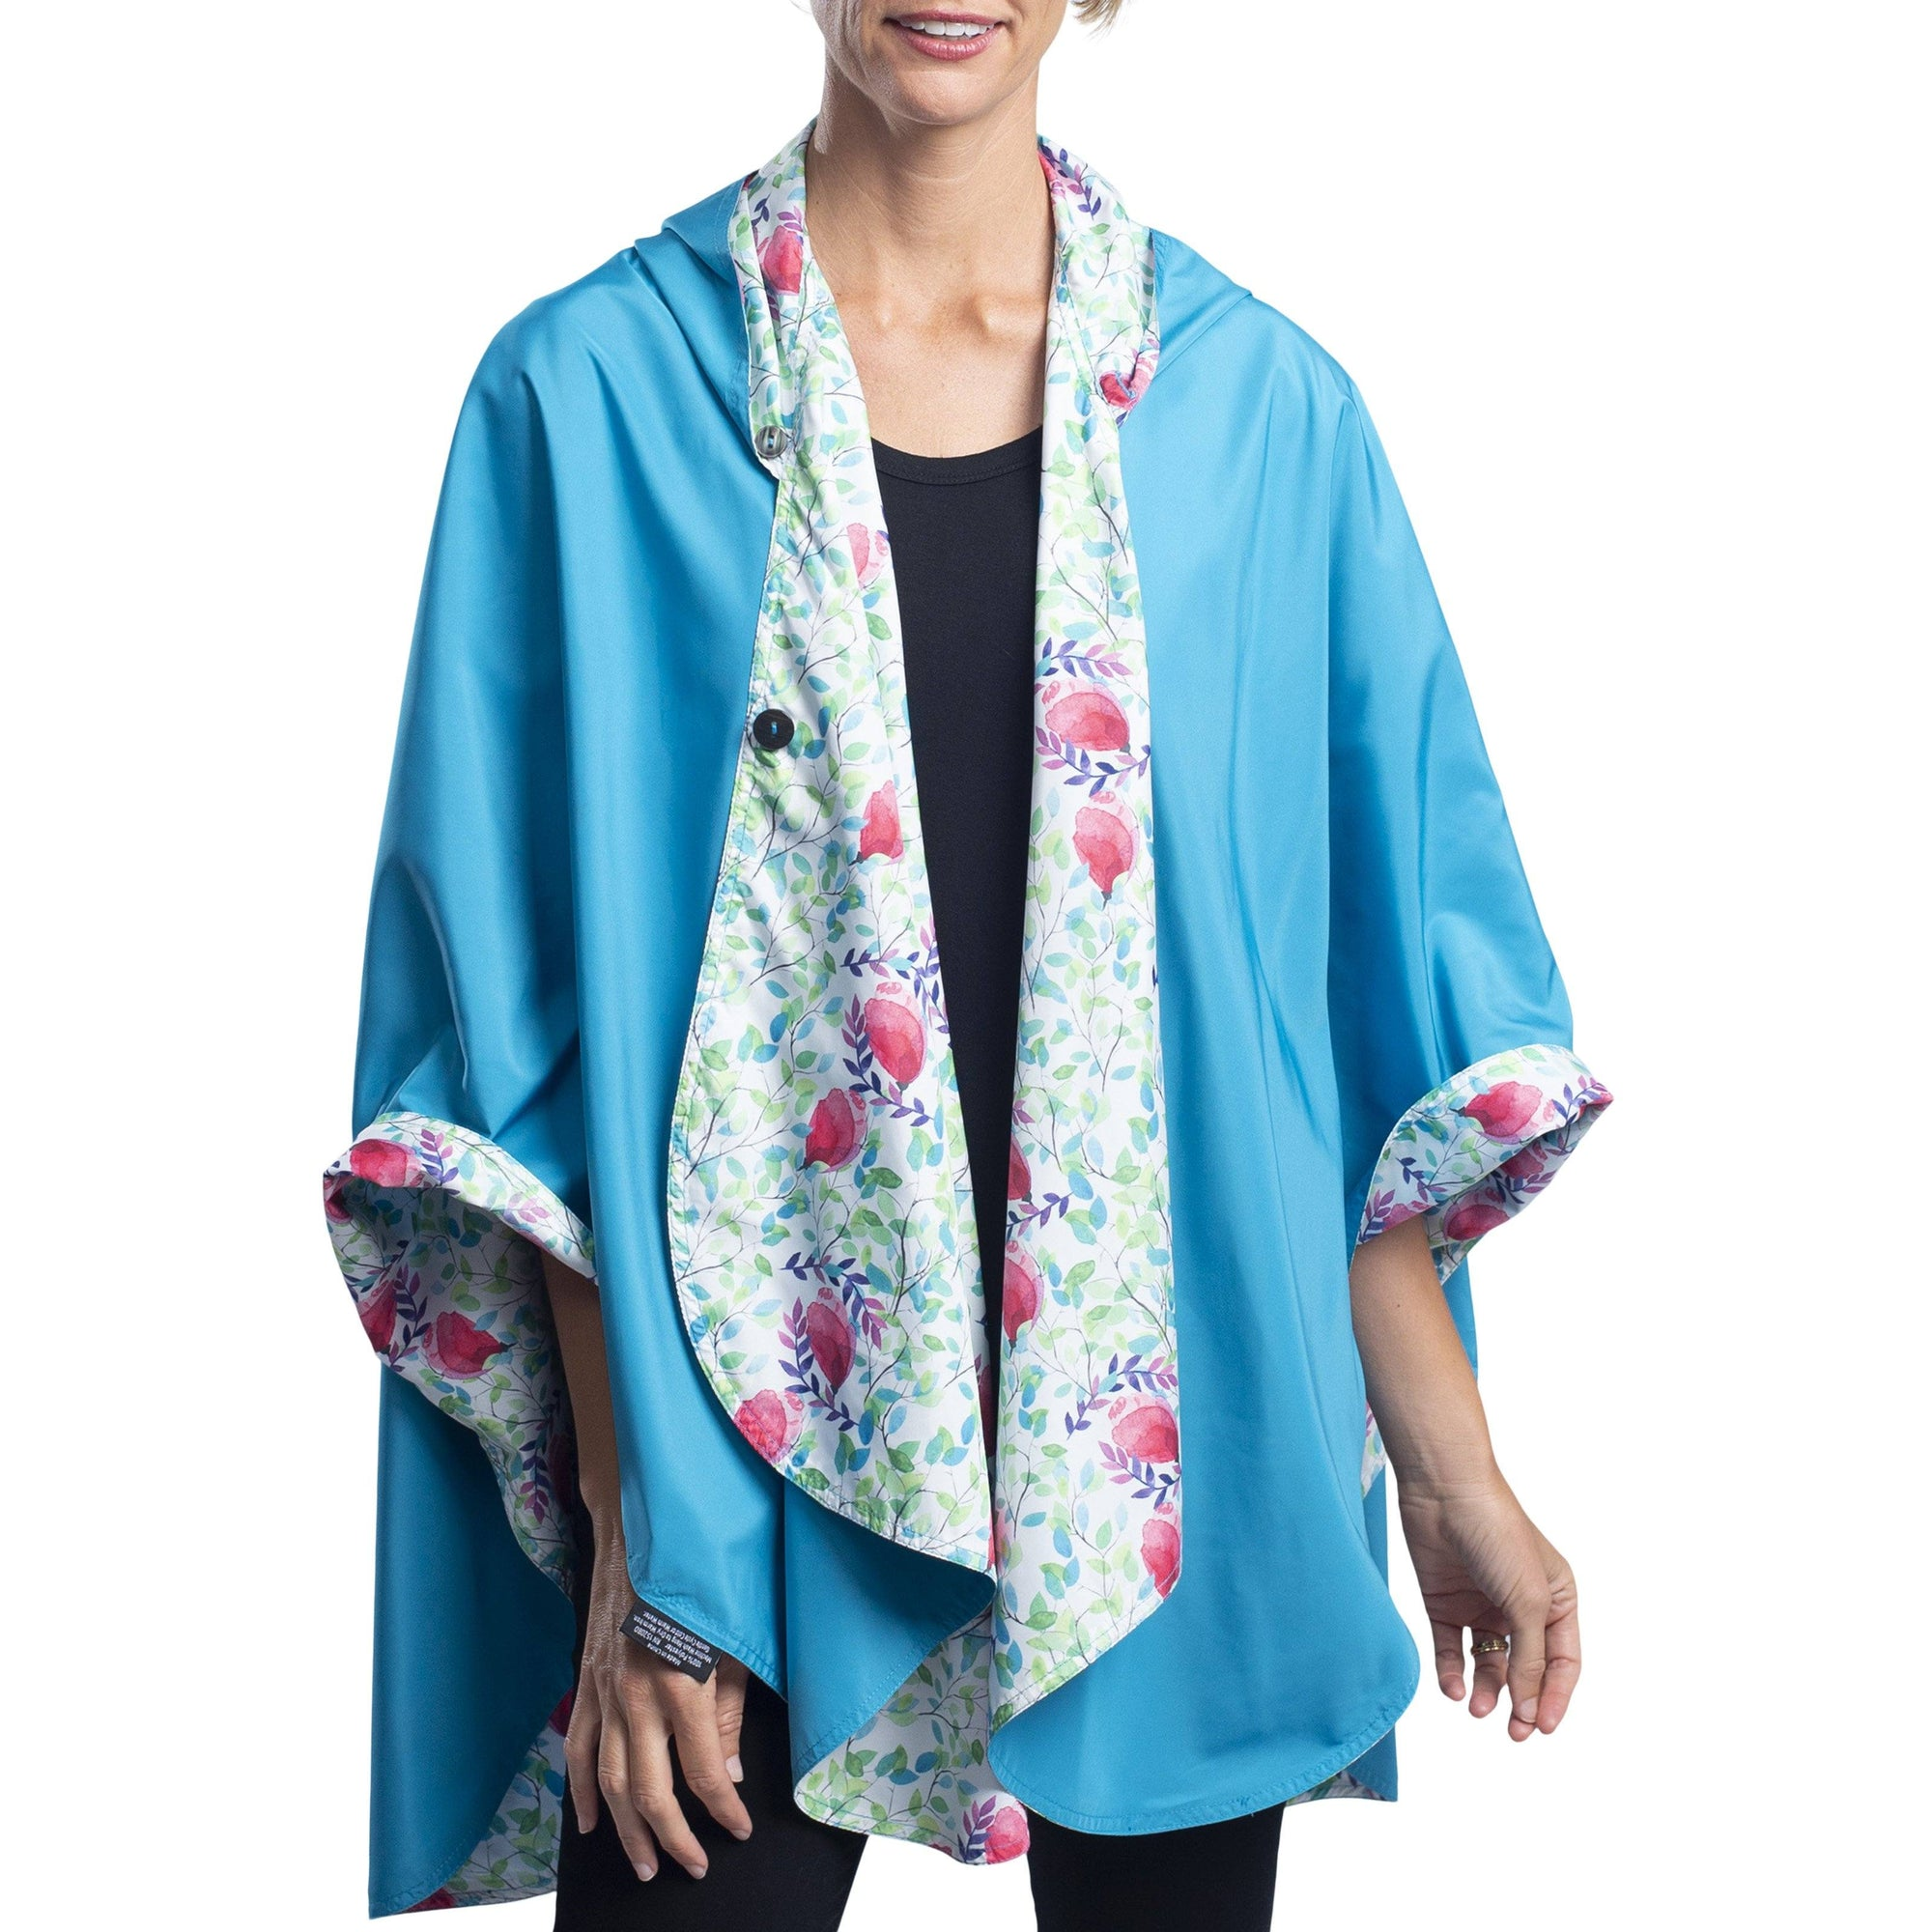 Women wearing an Aqua & Spring Watercolor RainCaper travel cape with the Aqua side out, revealing the Spring Watercolor print at the lapels and cuffs